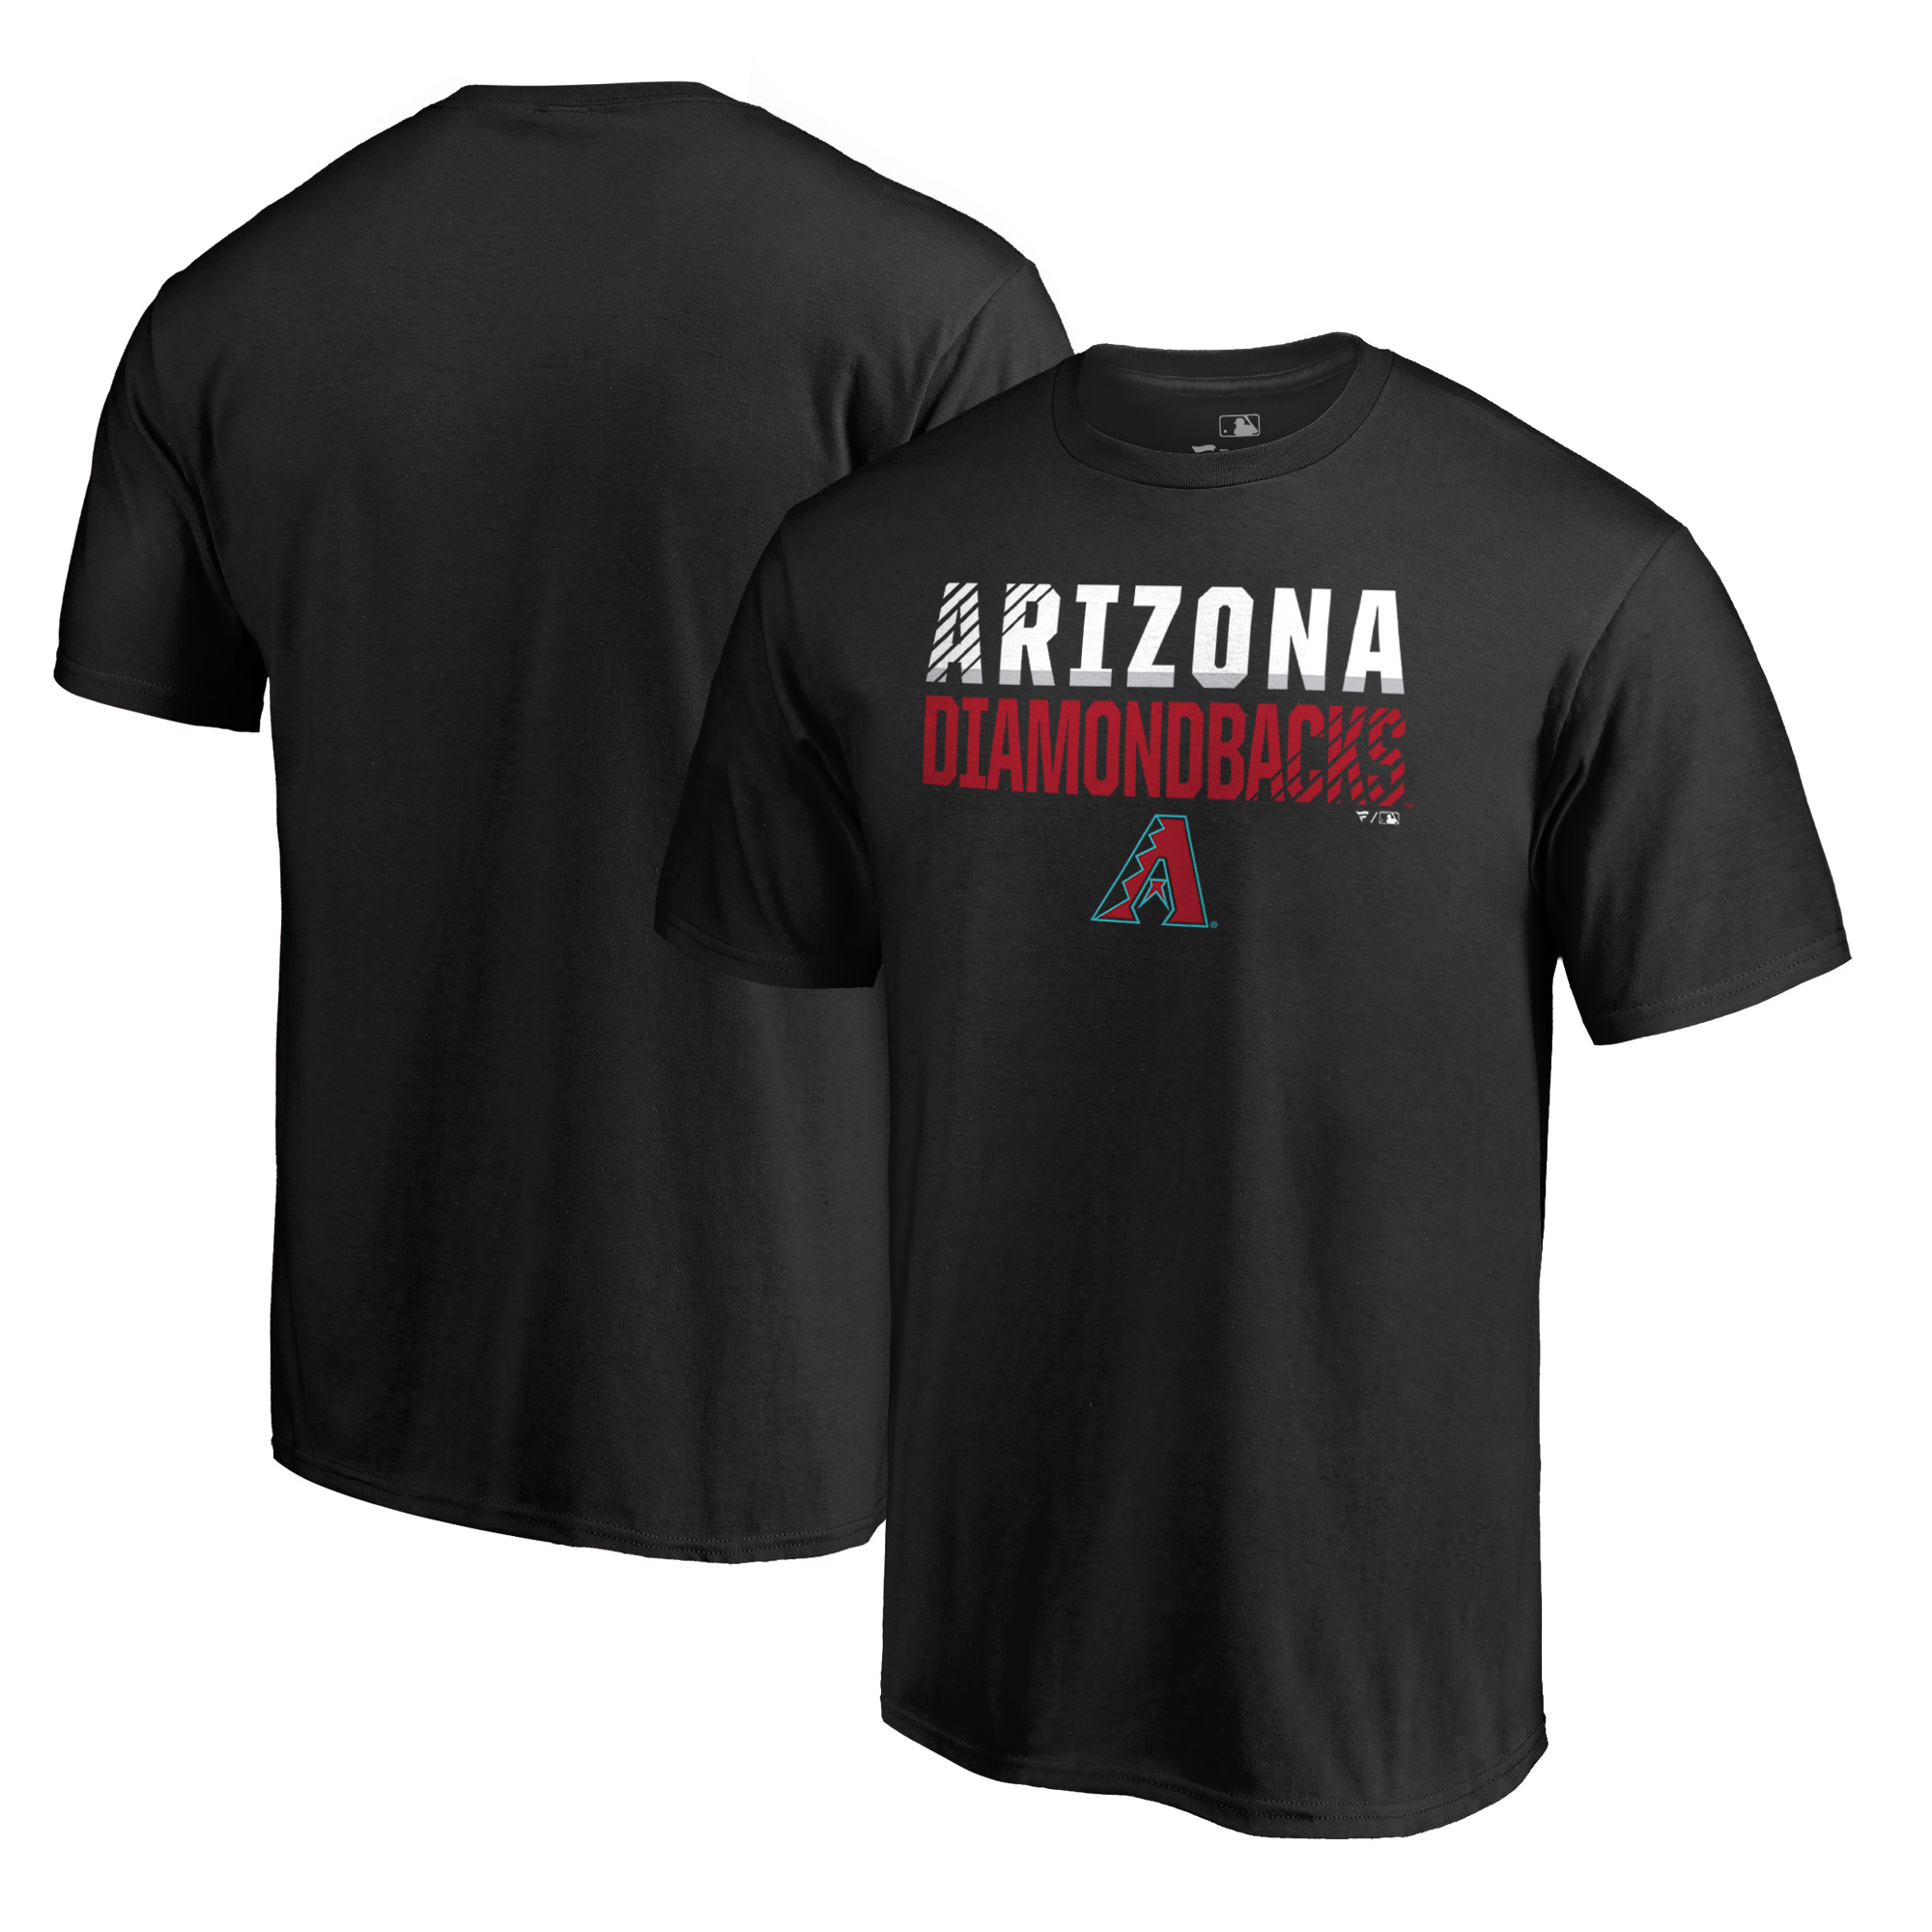 Arizona Diamondbacks Fanatics Branded Fade Out Big and Tall T-Shirt - Black